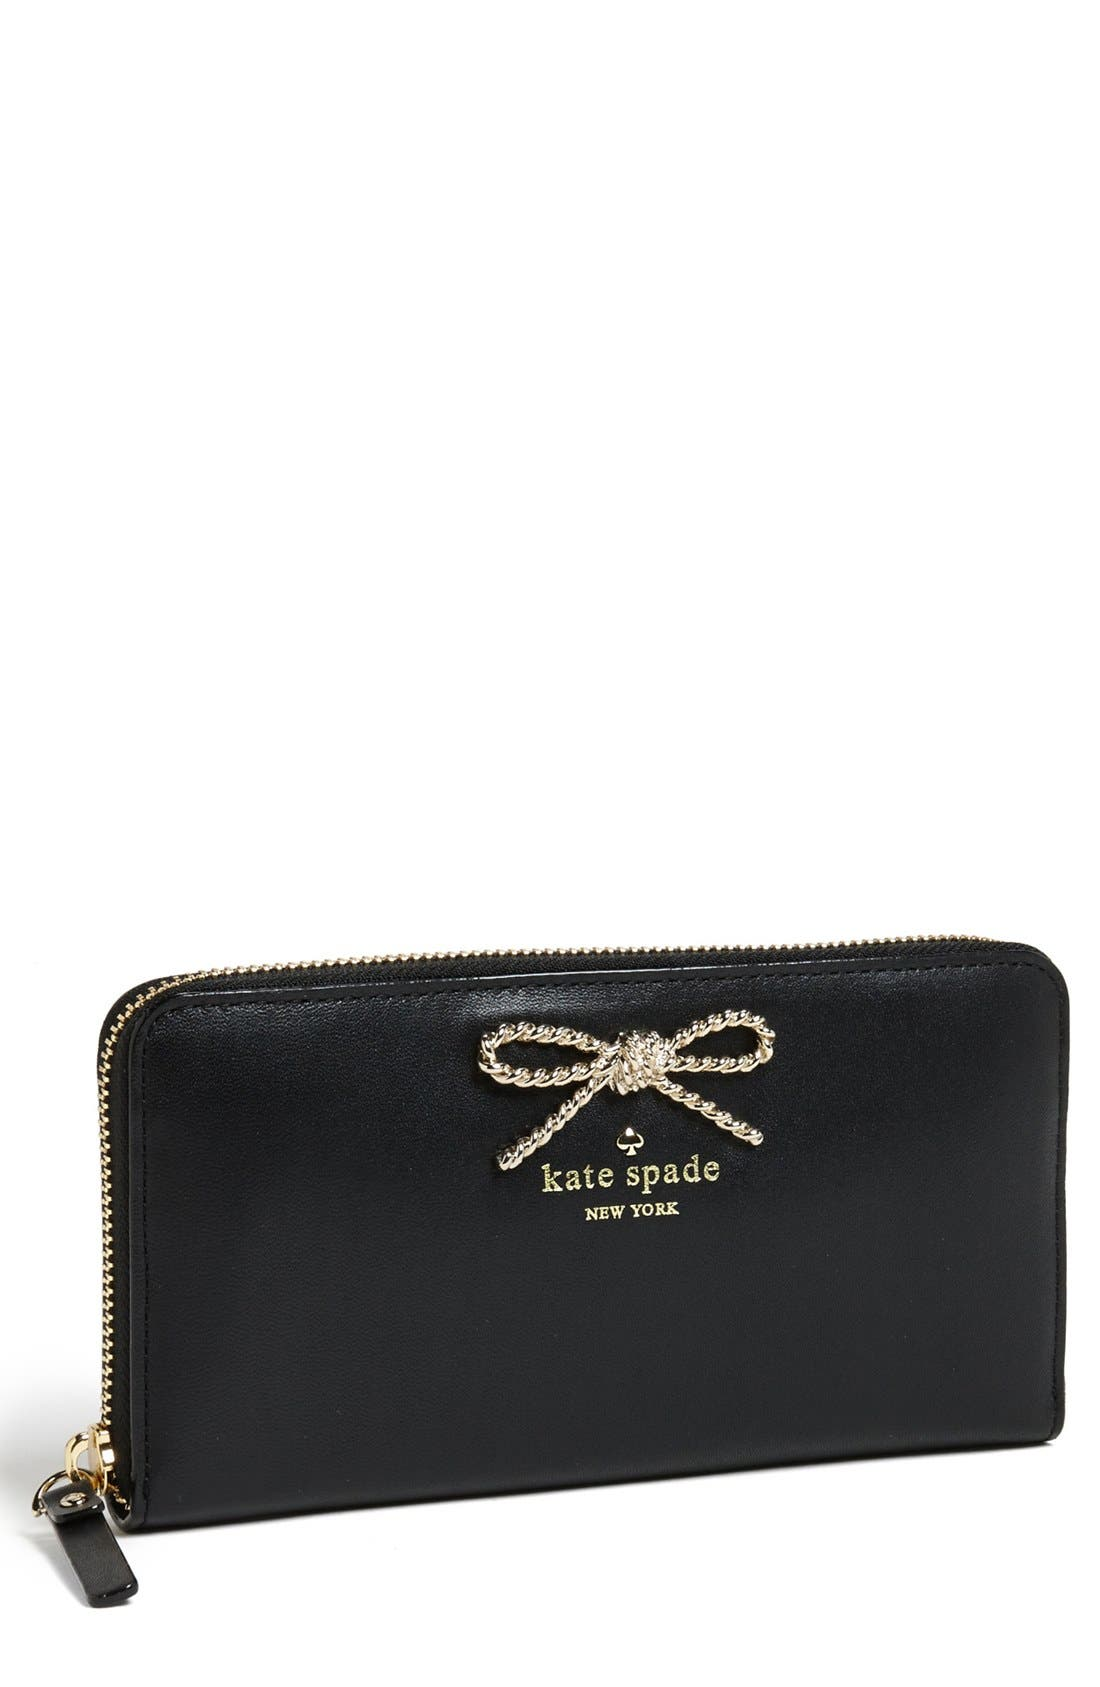 Alternate Image 1 Selected - kate spade new york 'fair maiden - lacey' leather wallet